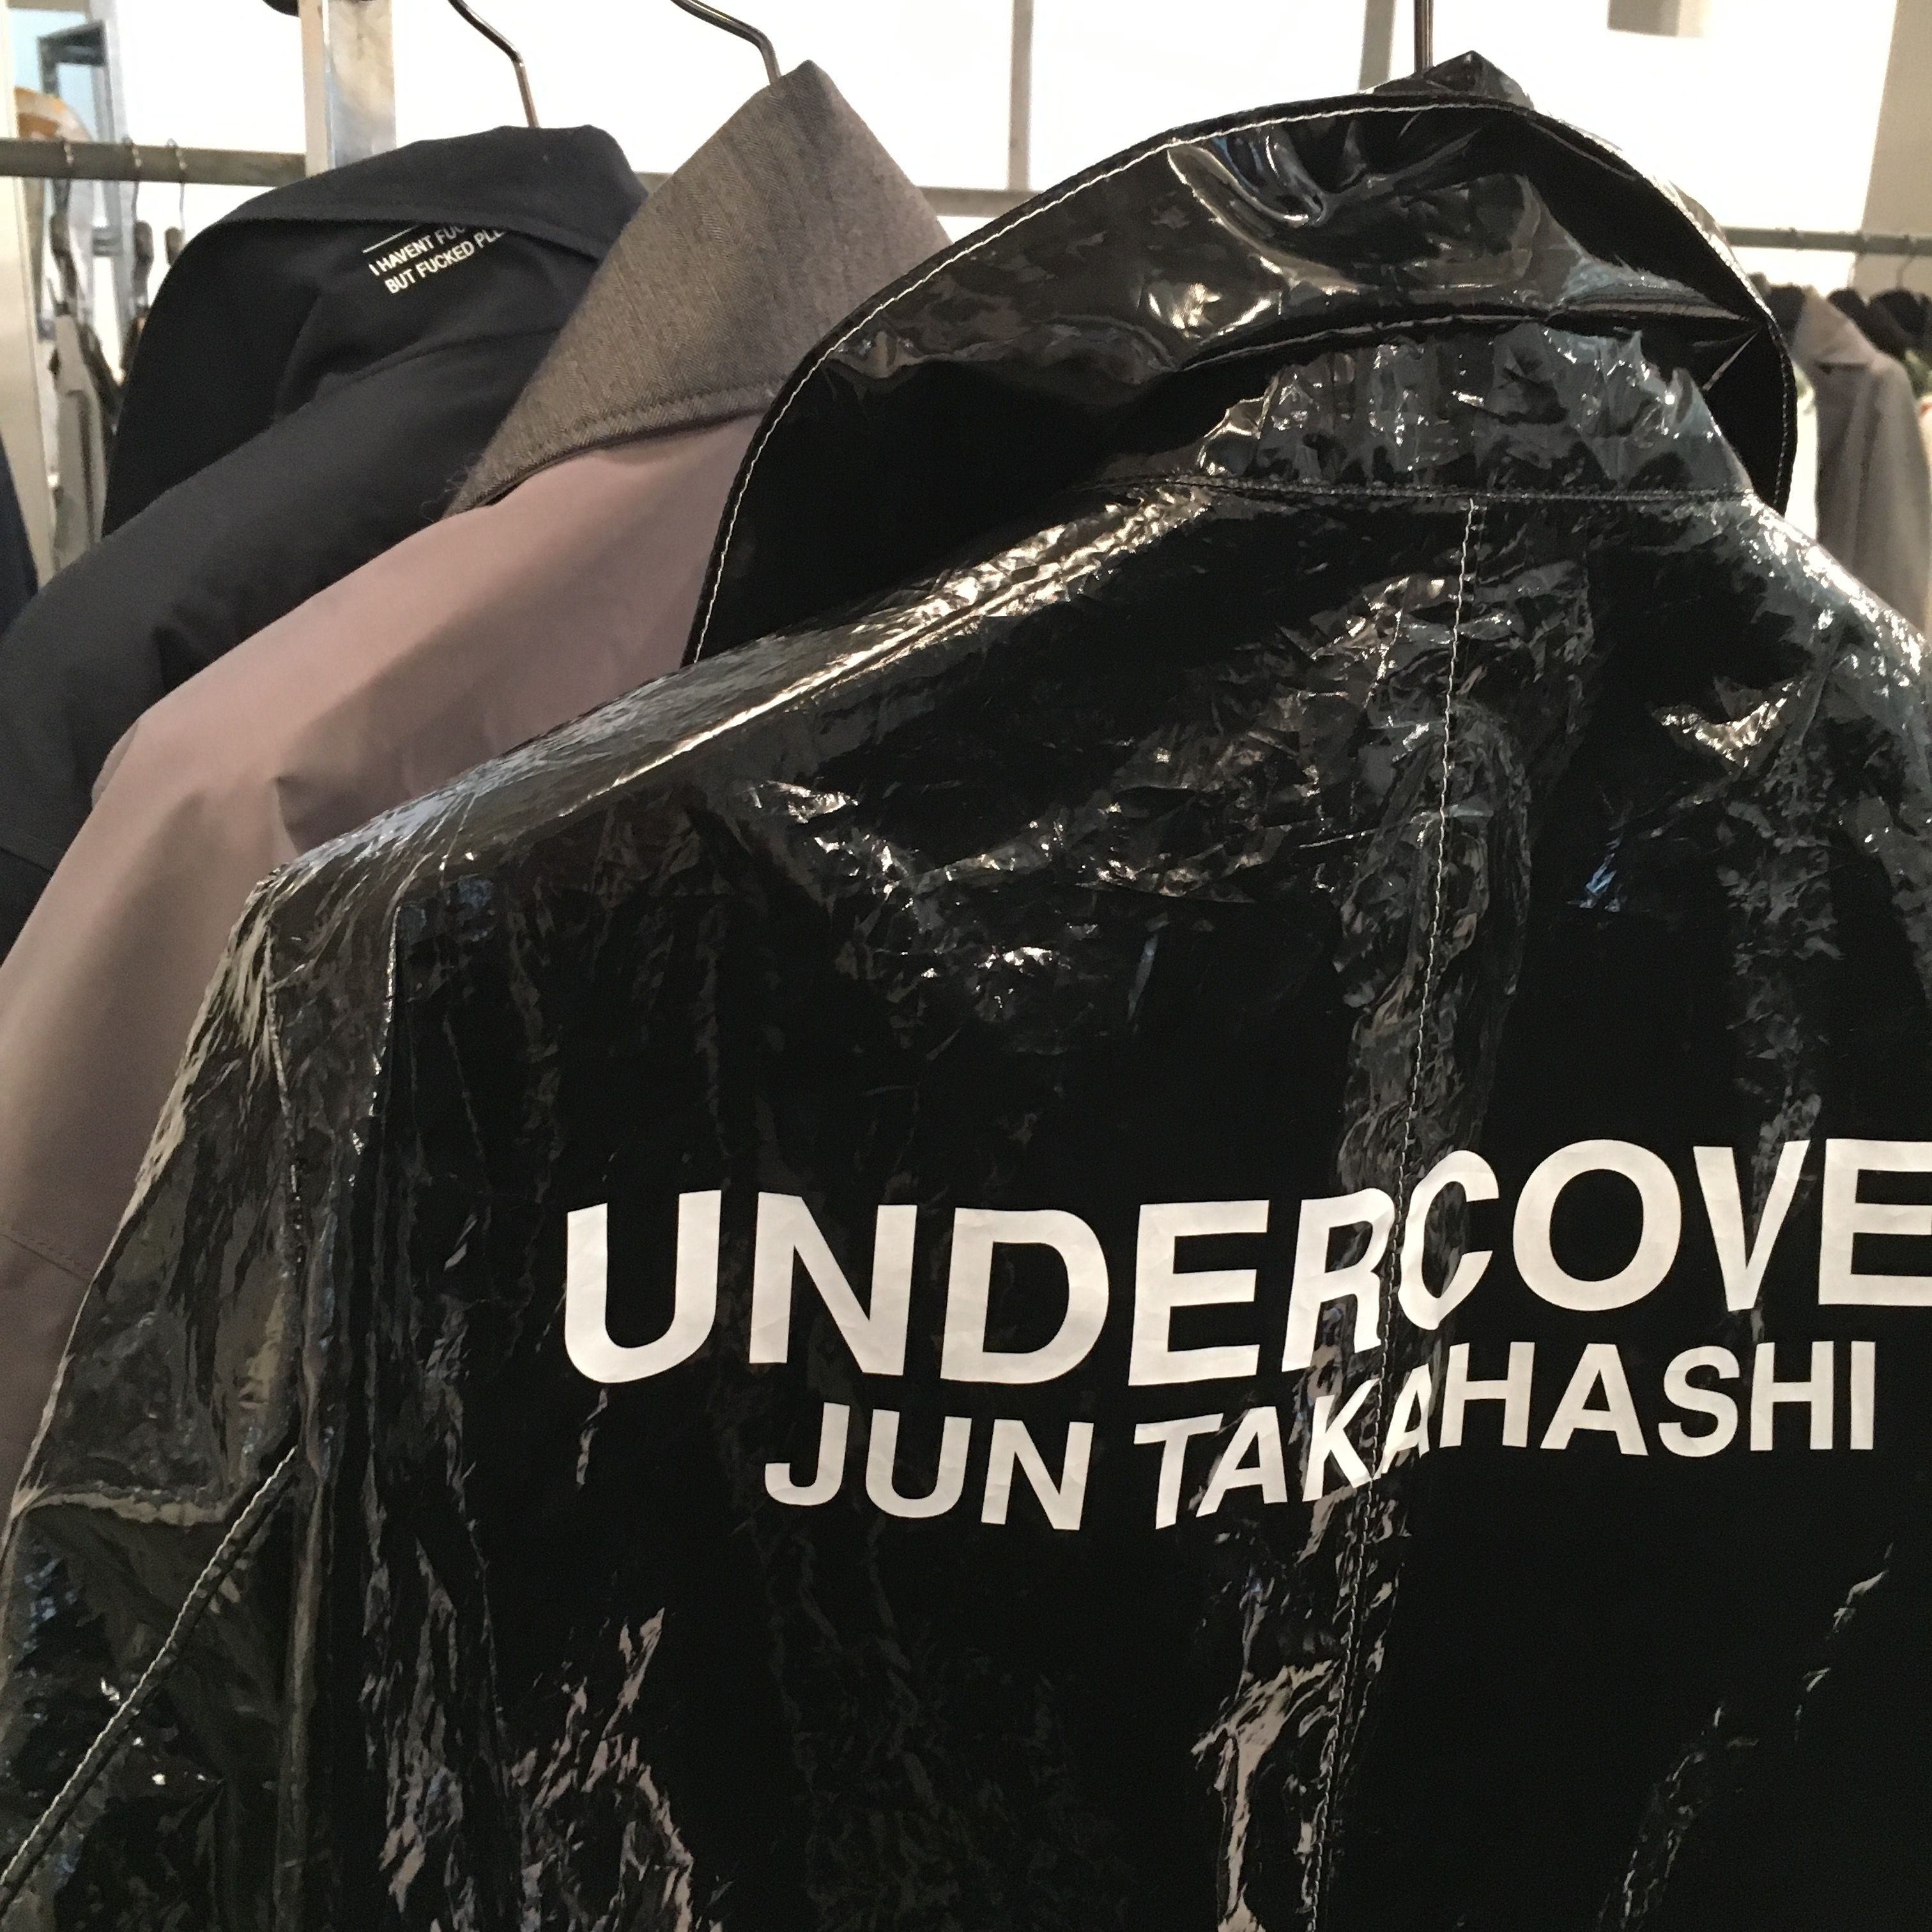 UNDERCOVER JUN TAKAHASHI | Page 3